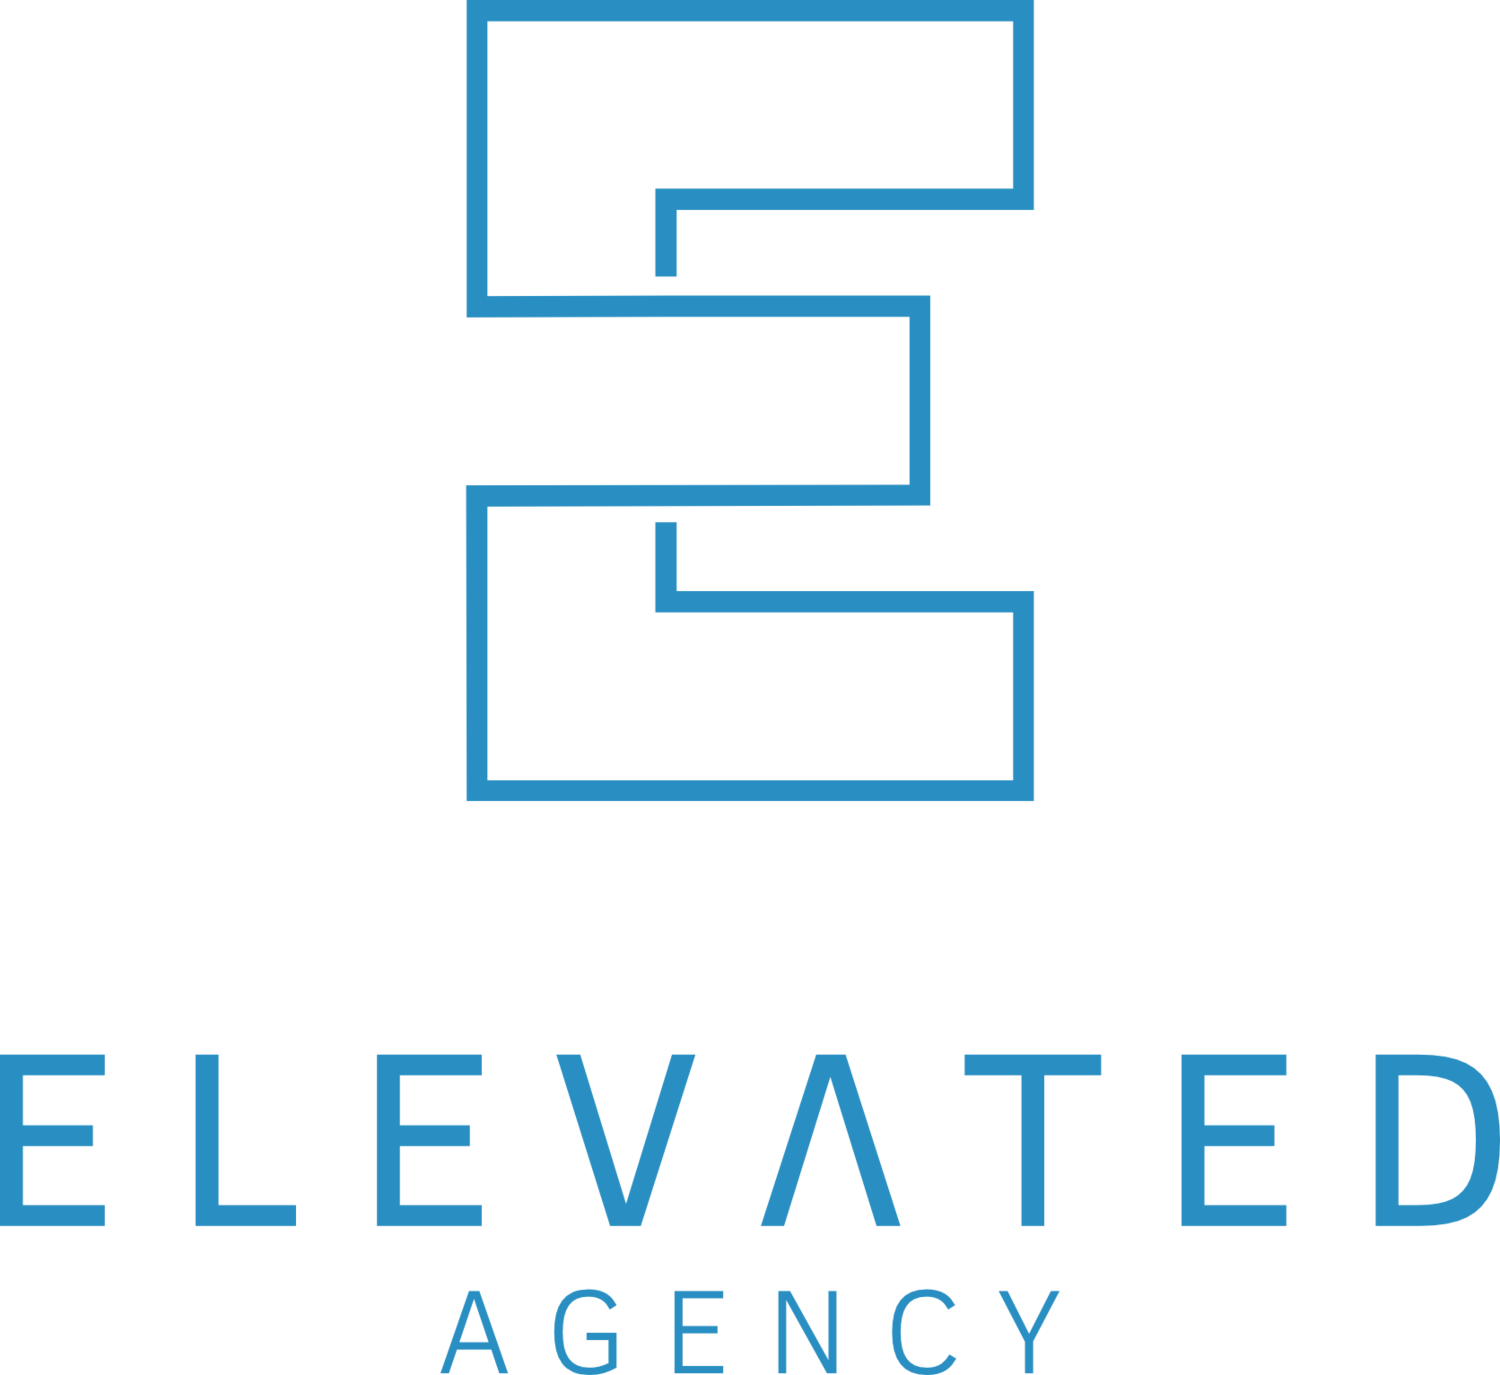 ELEVATED AGENCY